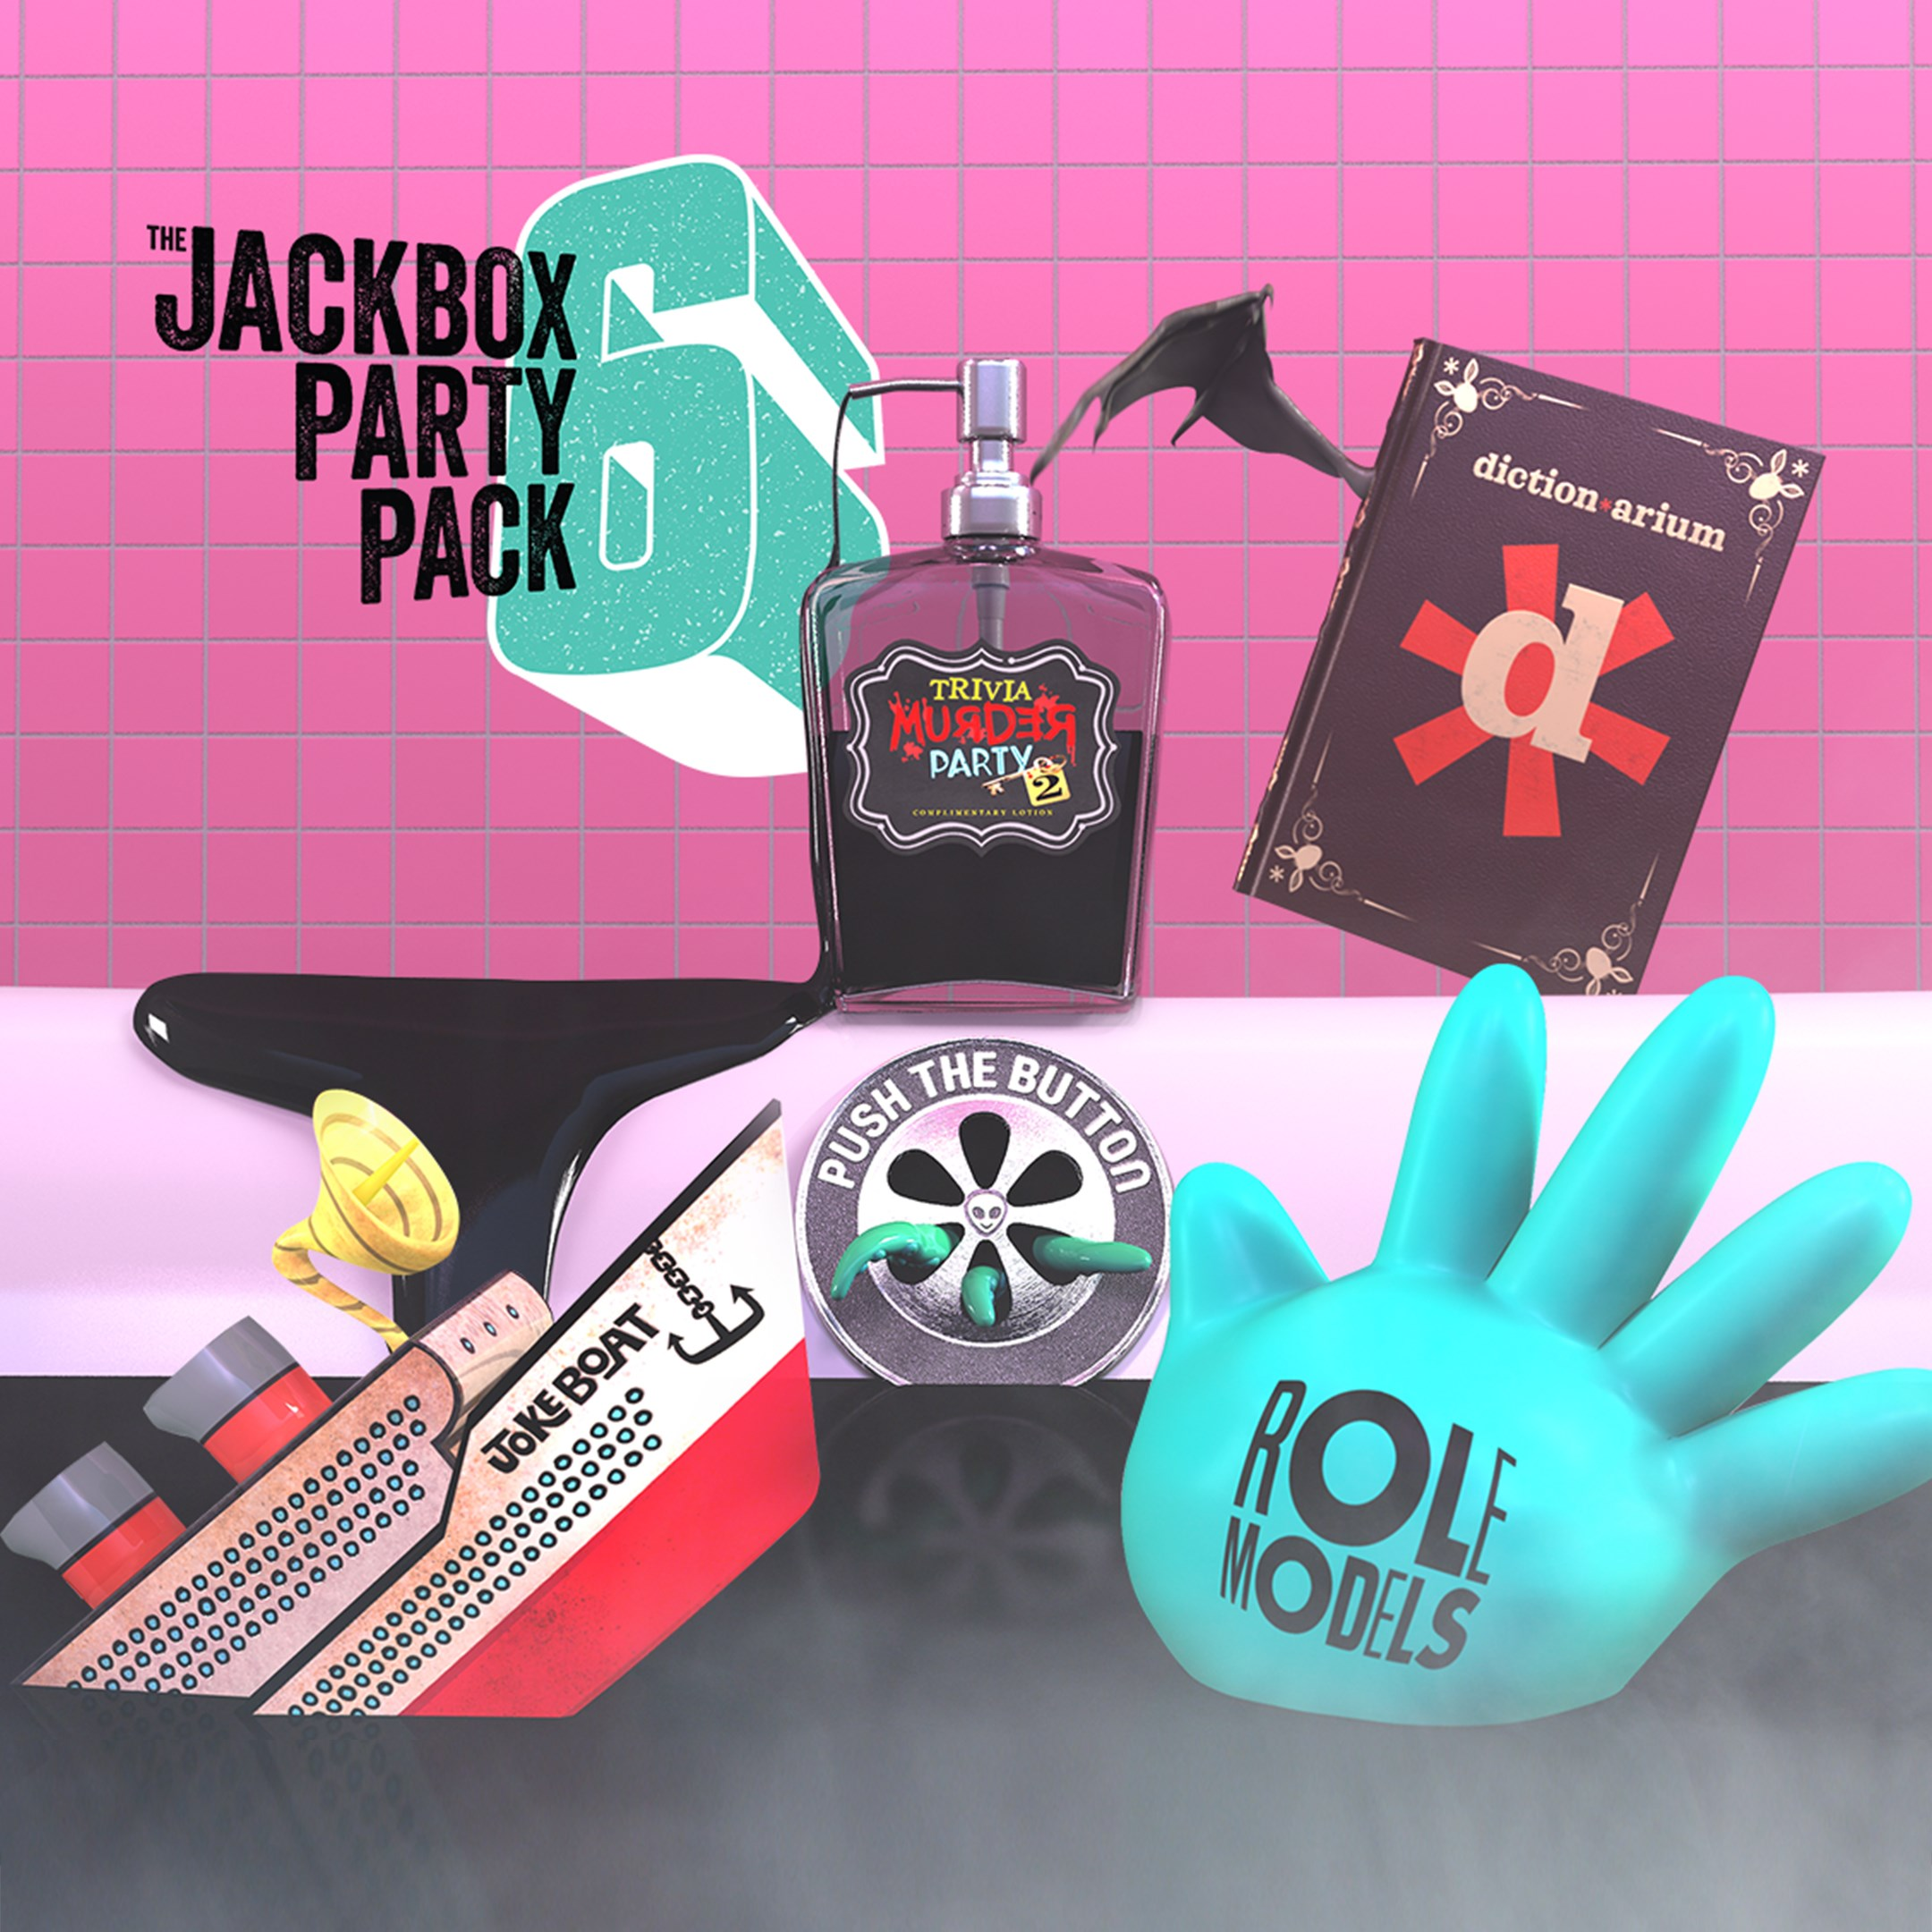 The Jackbox Party Pack 6 achievements